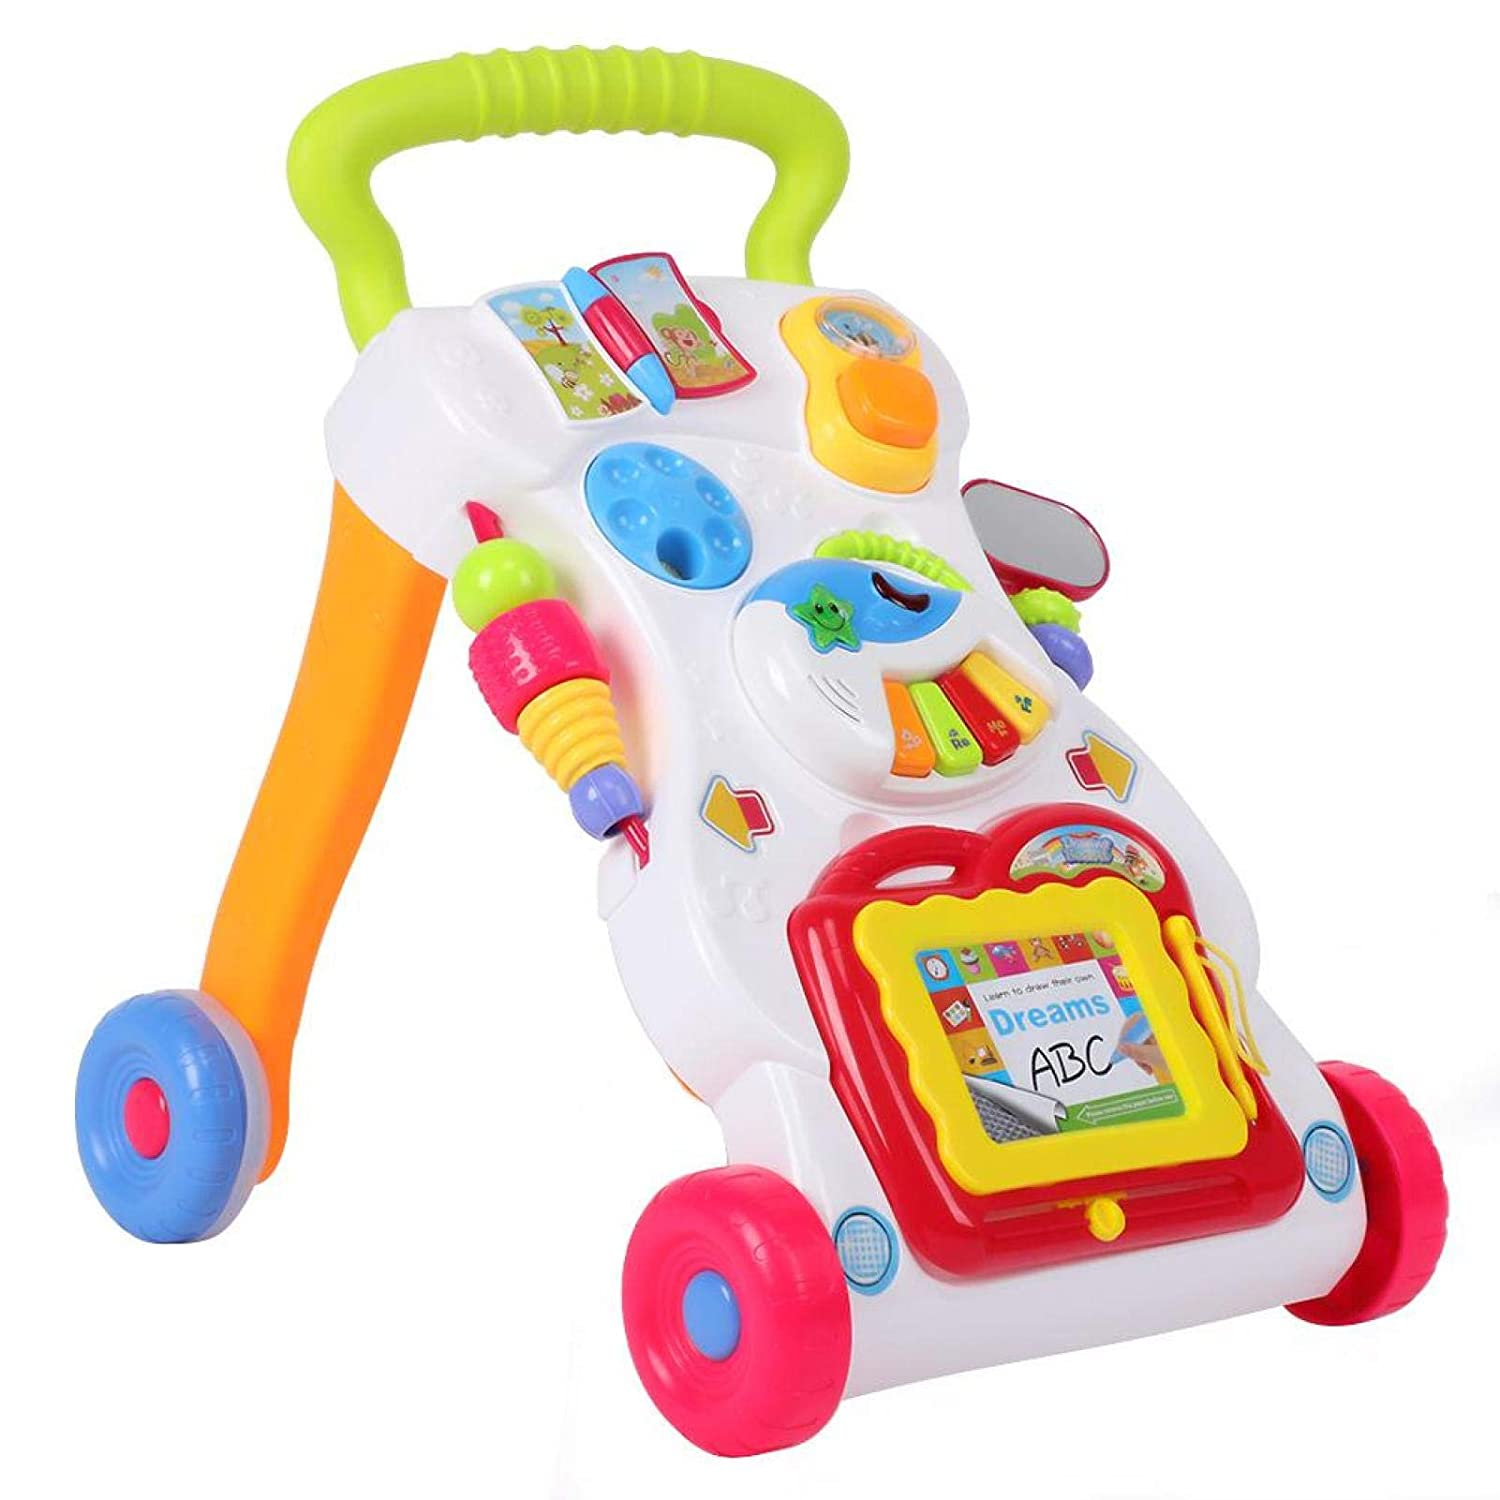 Safe Inexpensive Max 67% OFF Learning Walker Sit-to-Stand Interactive Walkers Gif Toys